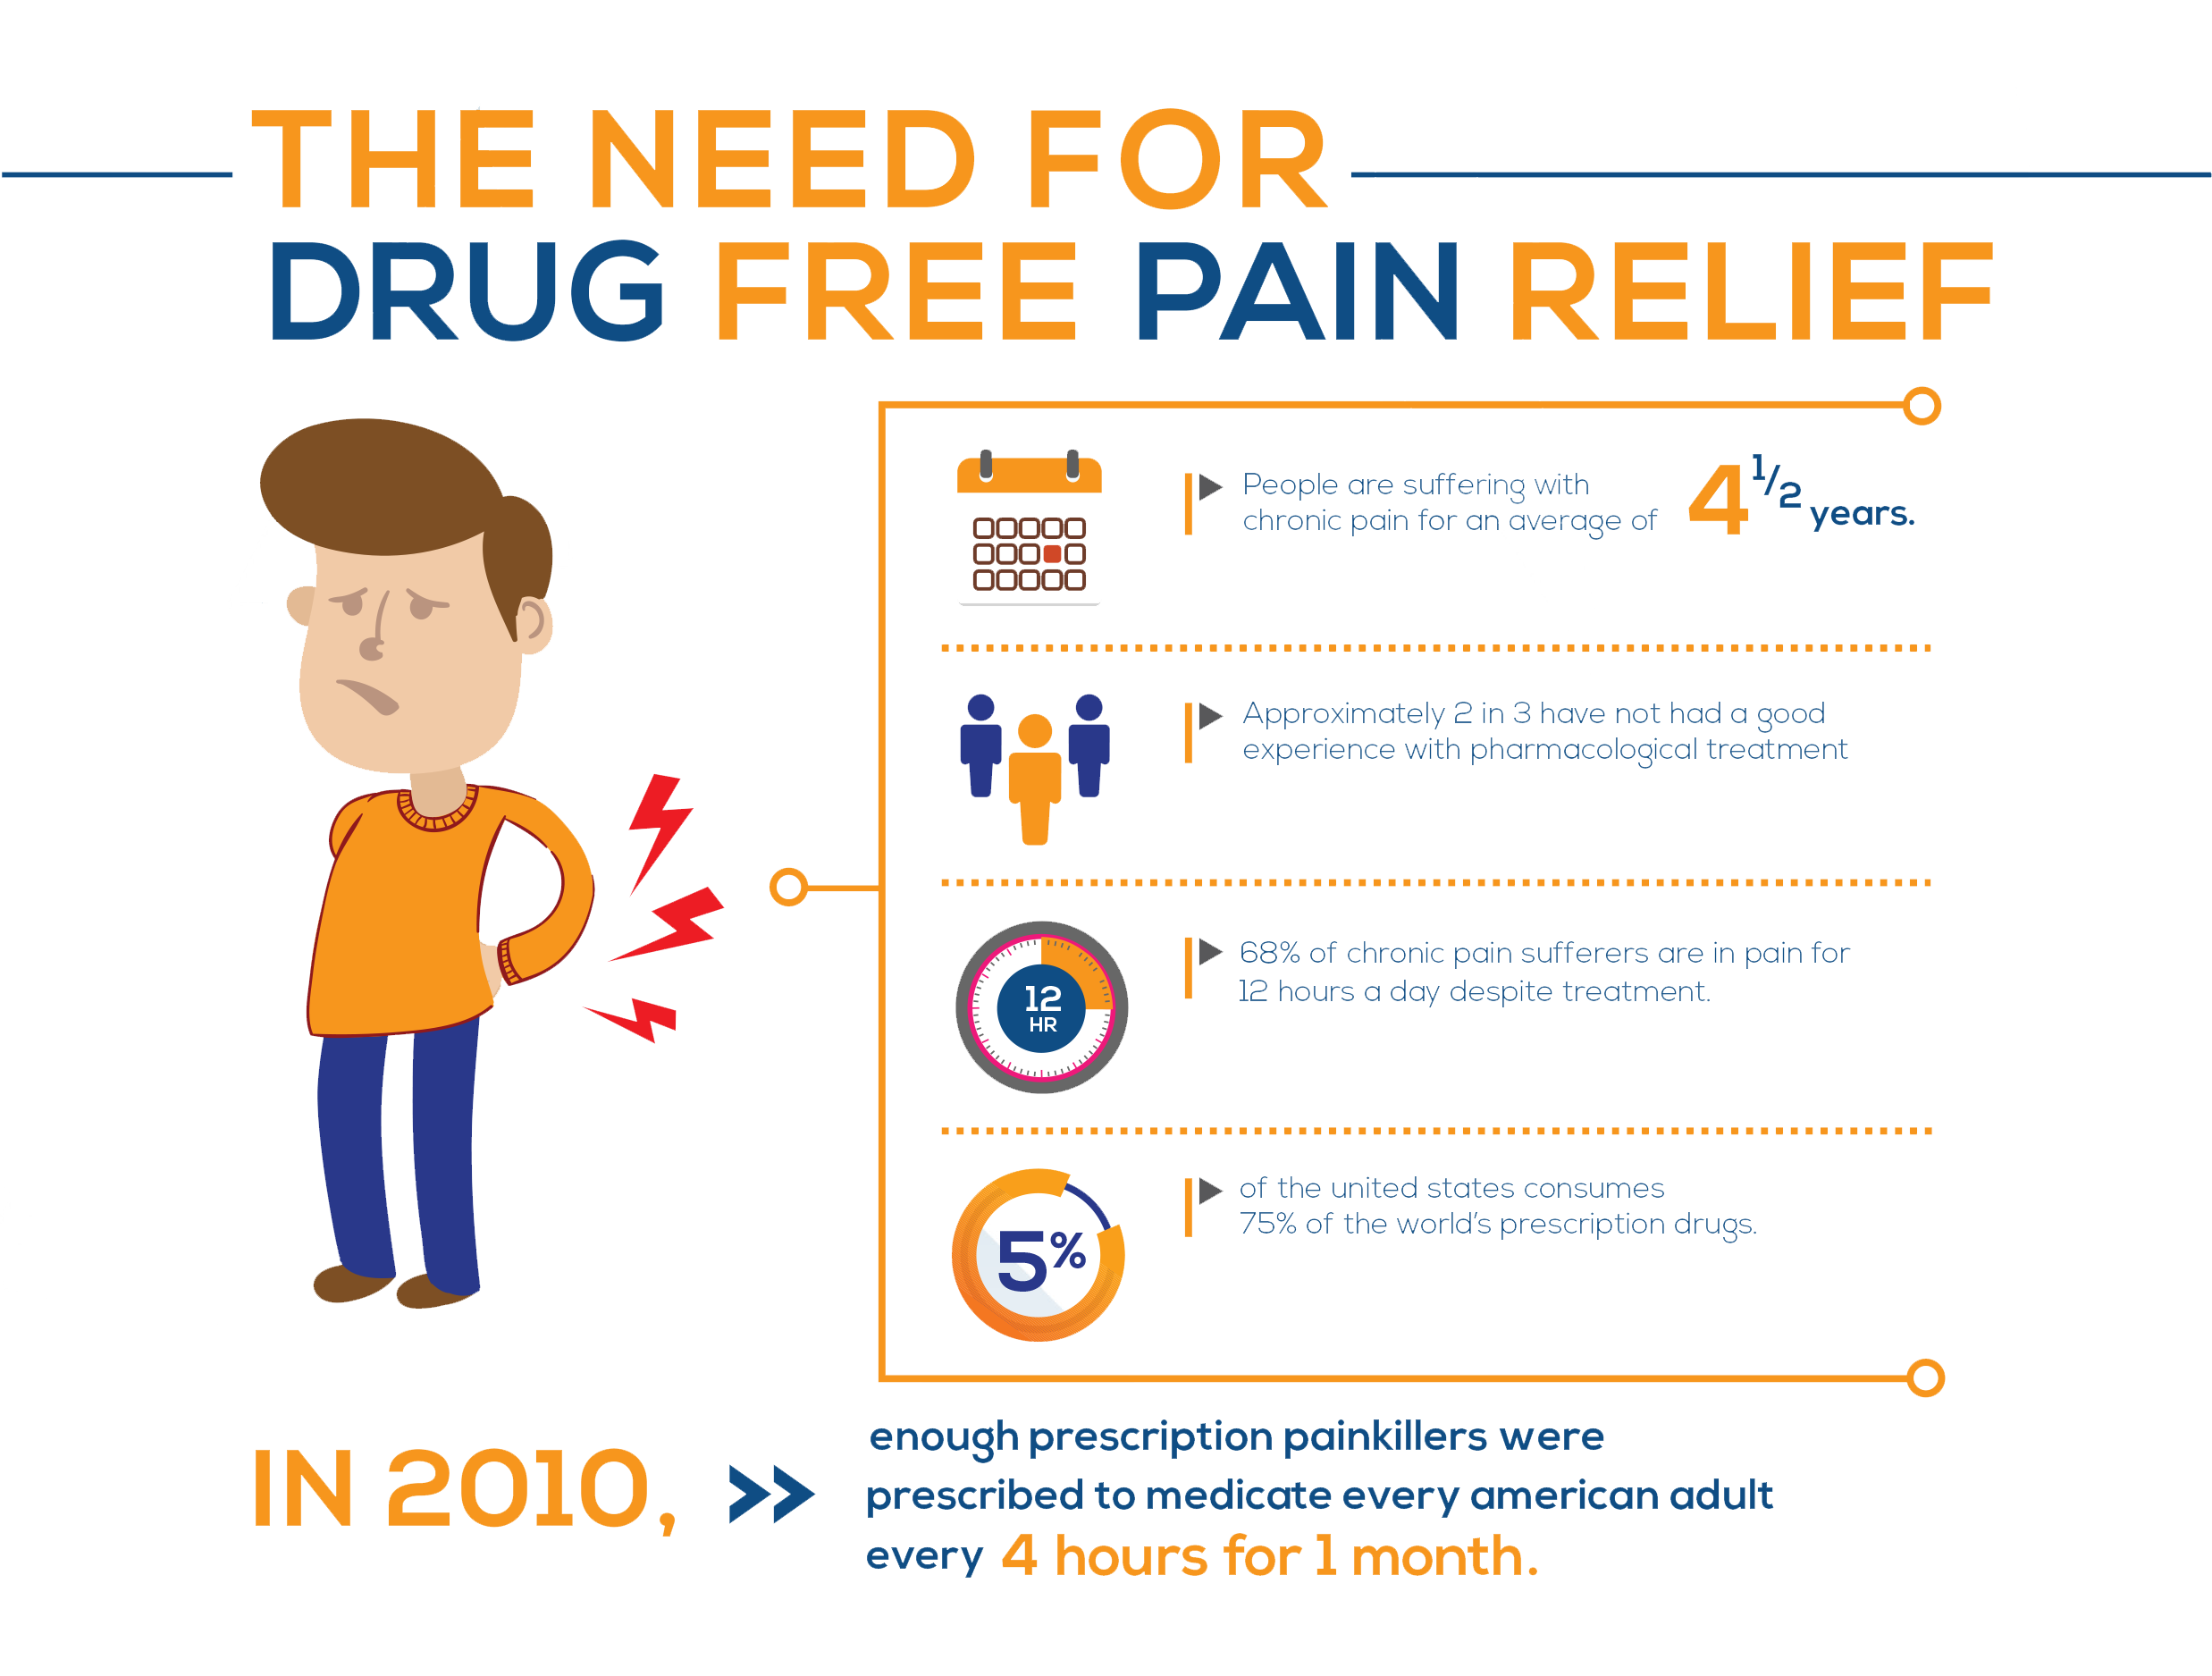 The need for Drug Free Pain Relief